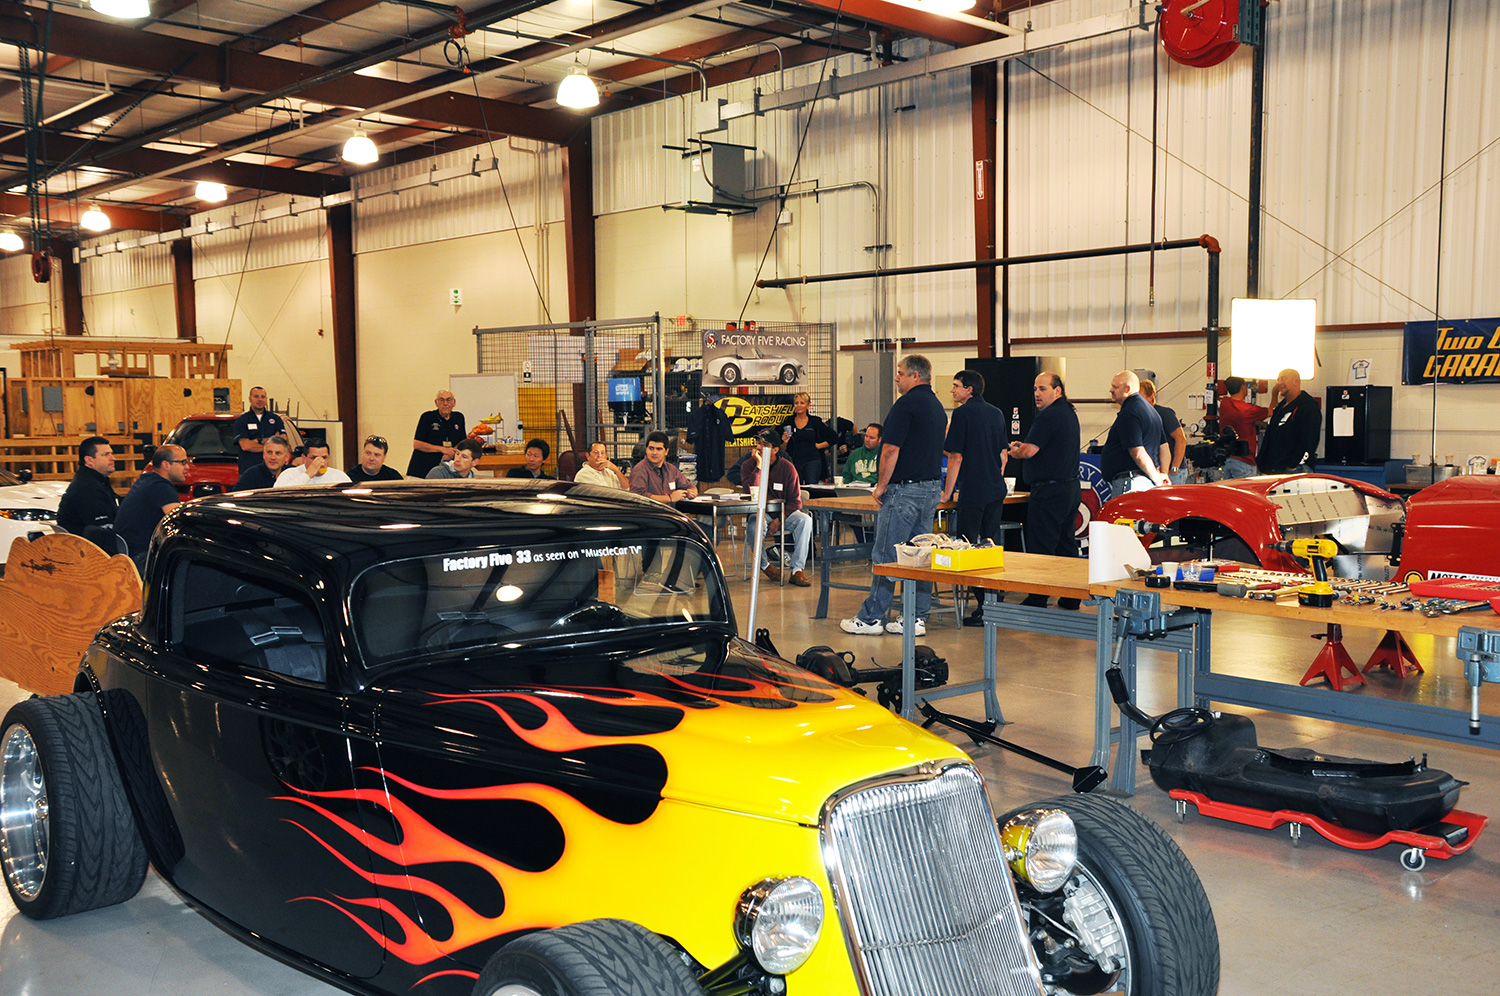 Factory Five Racing Build School